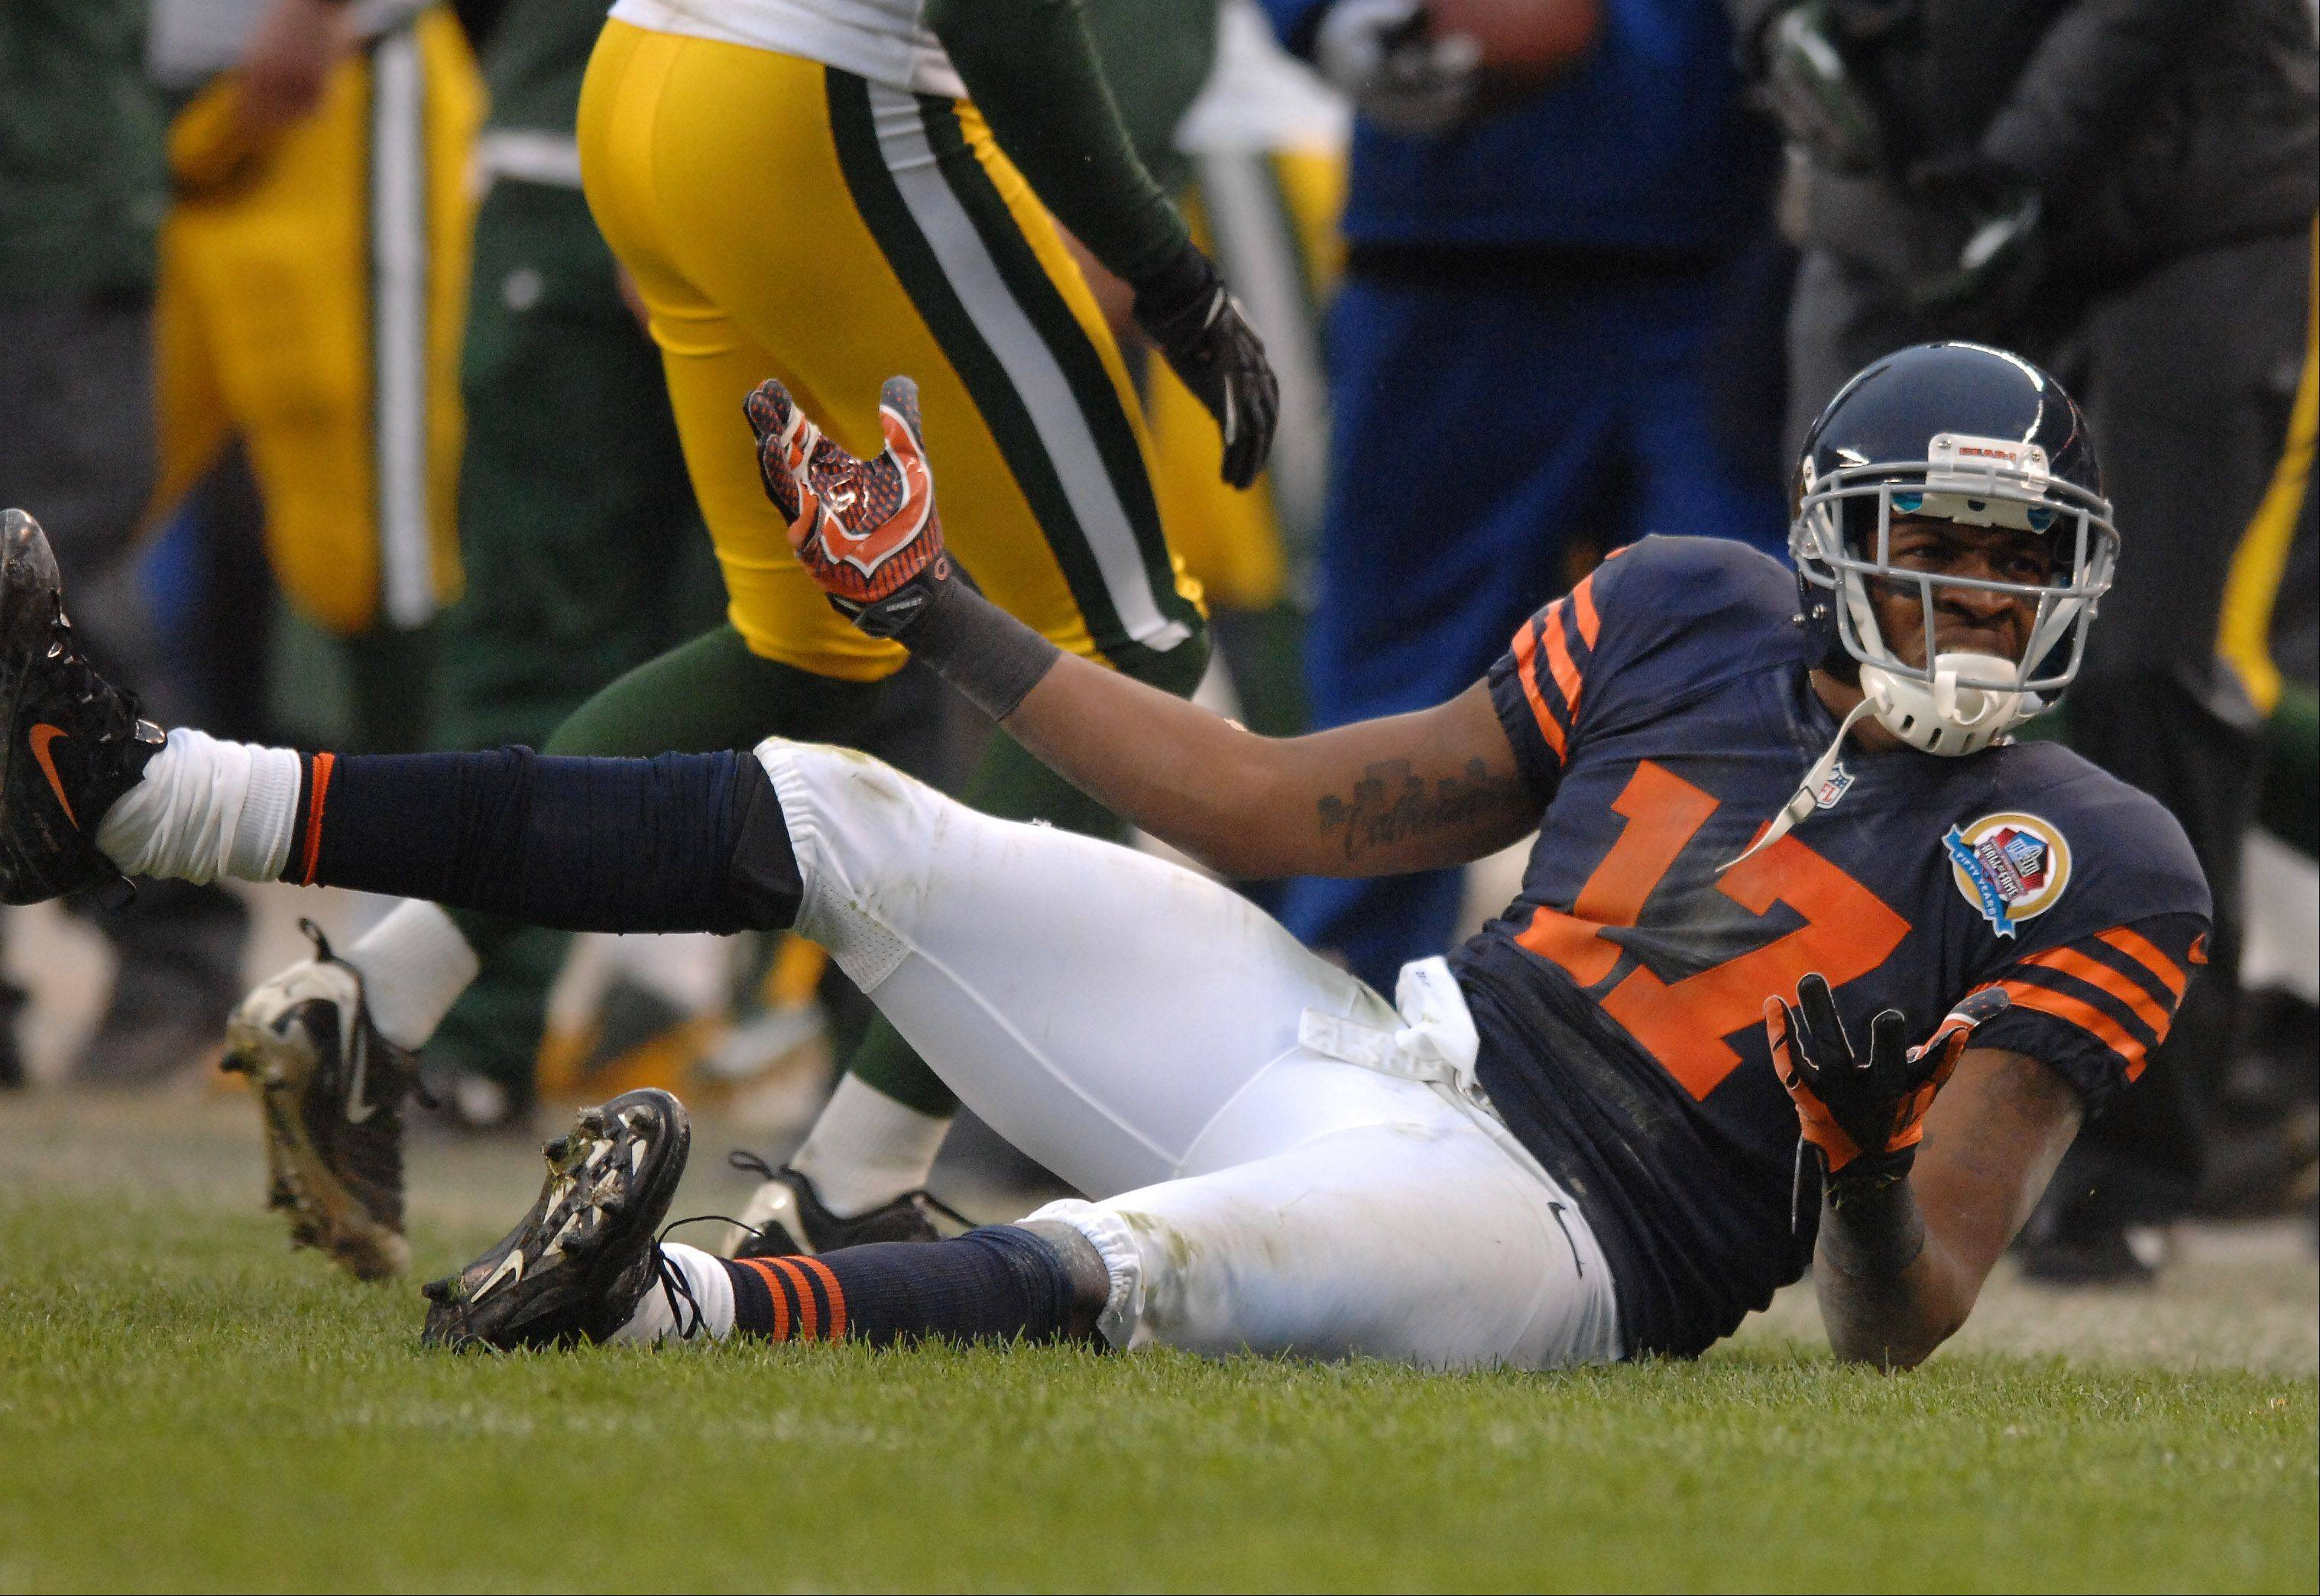 Alshon Jeffery (17) reacts to a call against him during Sunday's game at Soldier Field in Chicago.